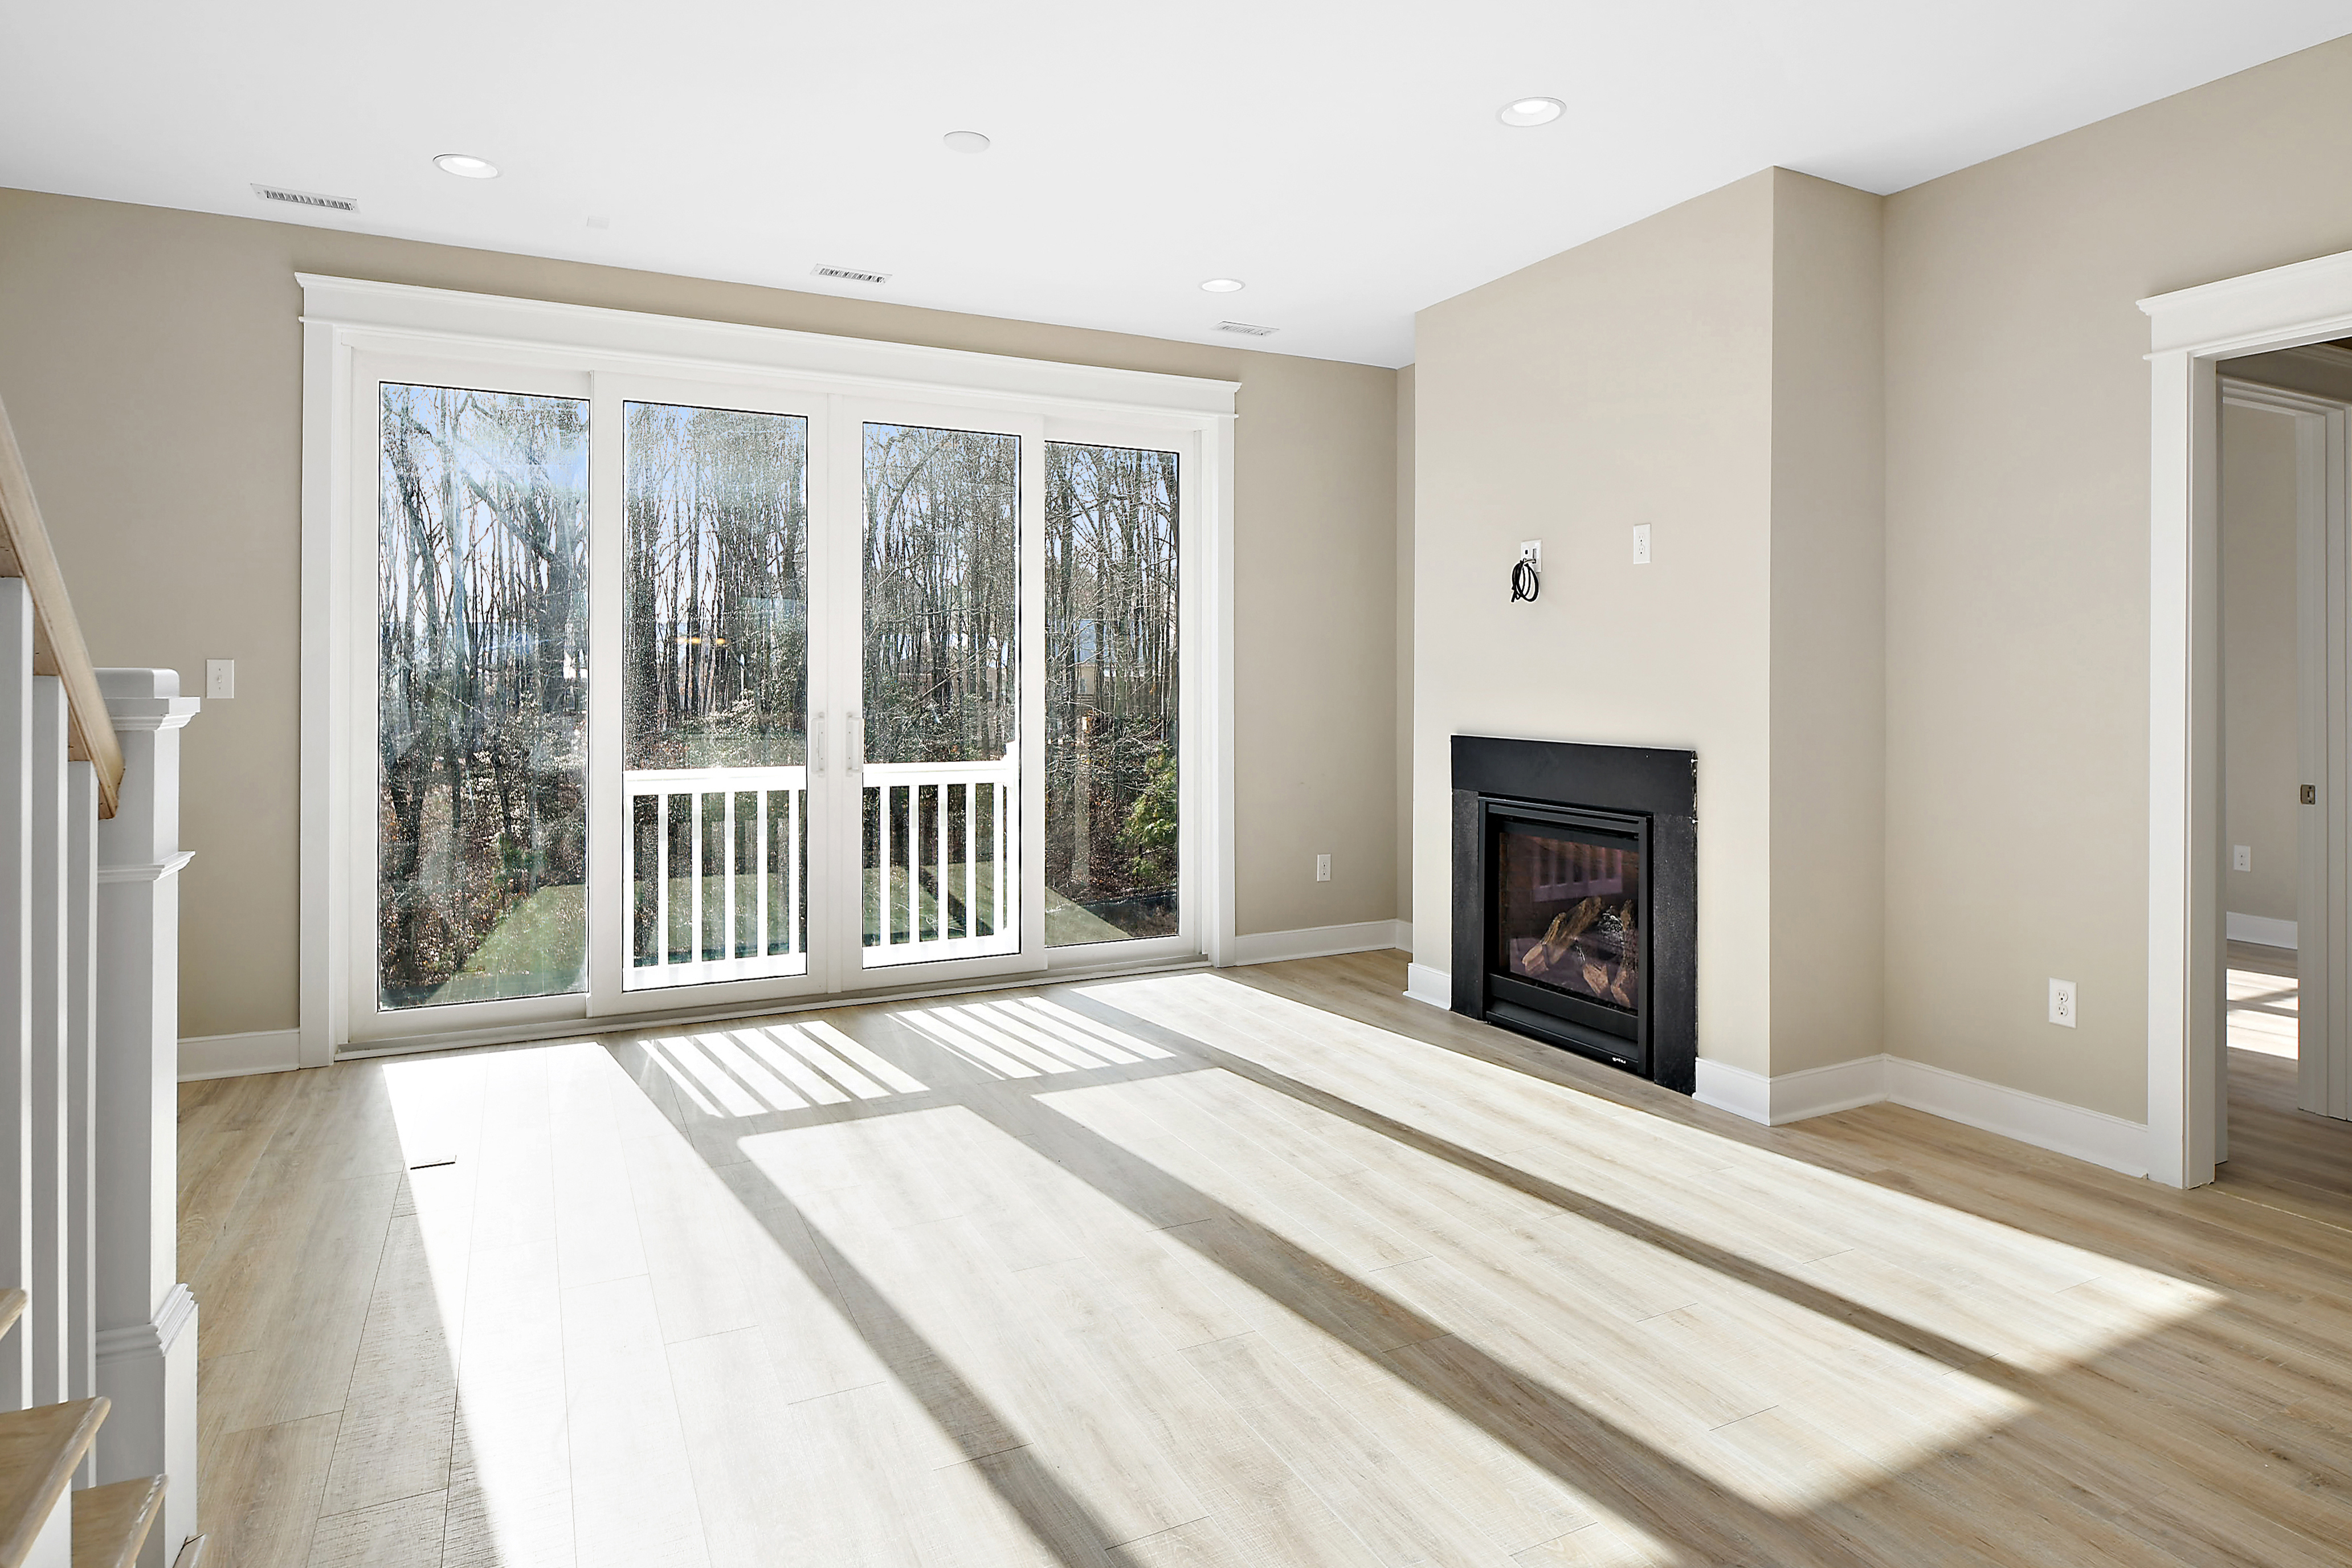 Living Area Rear Windows and Fire Place